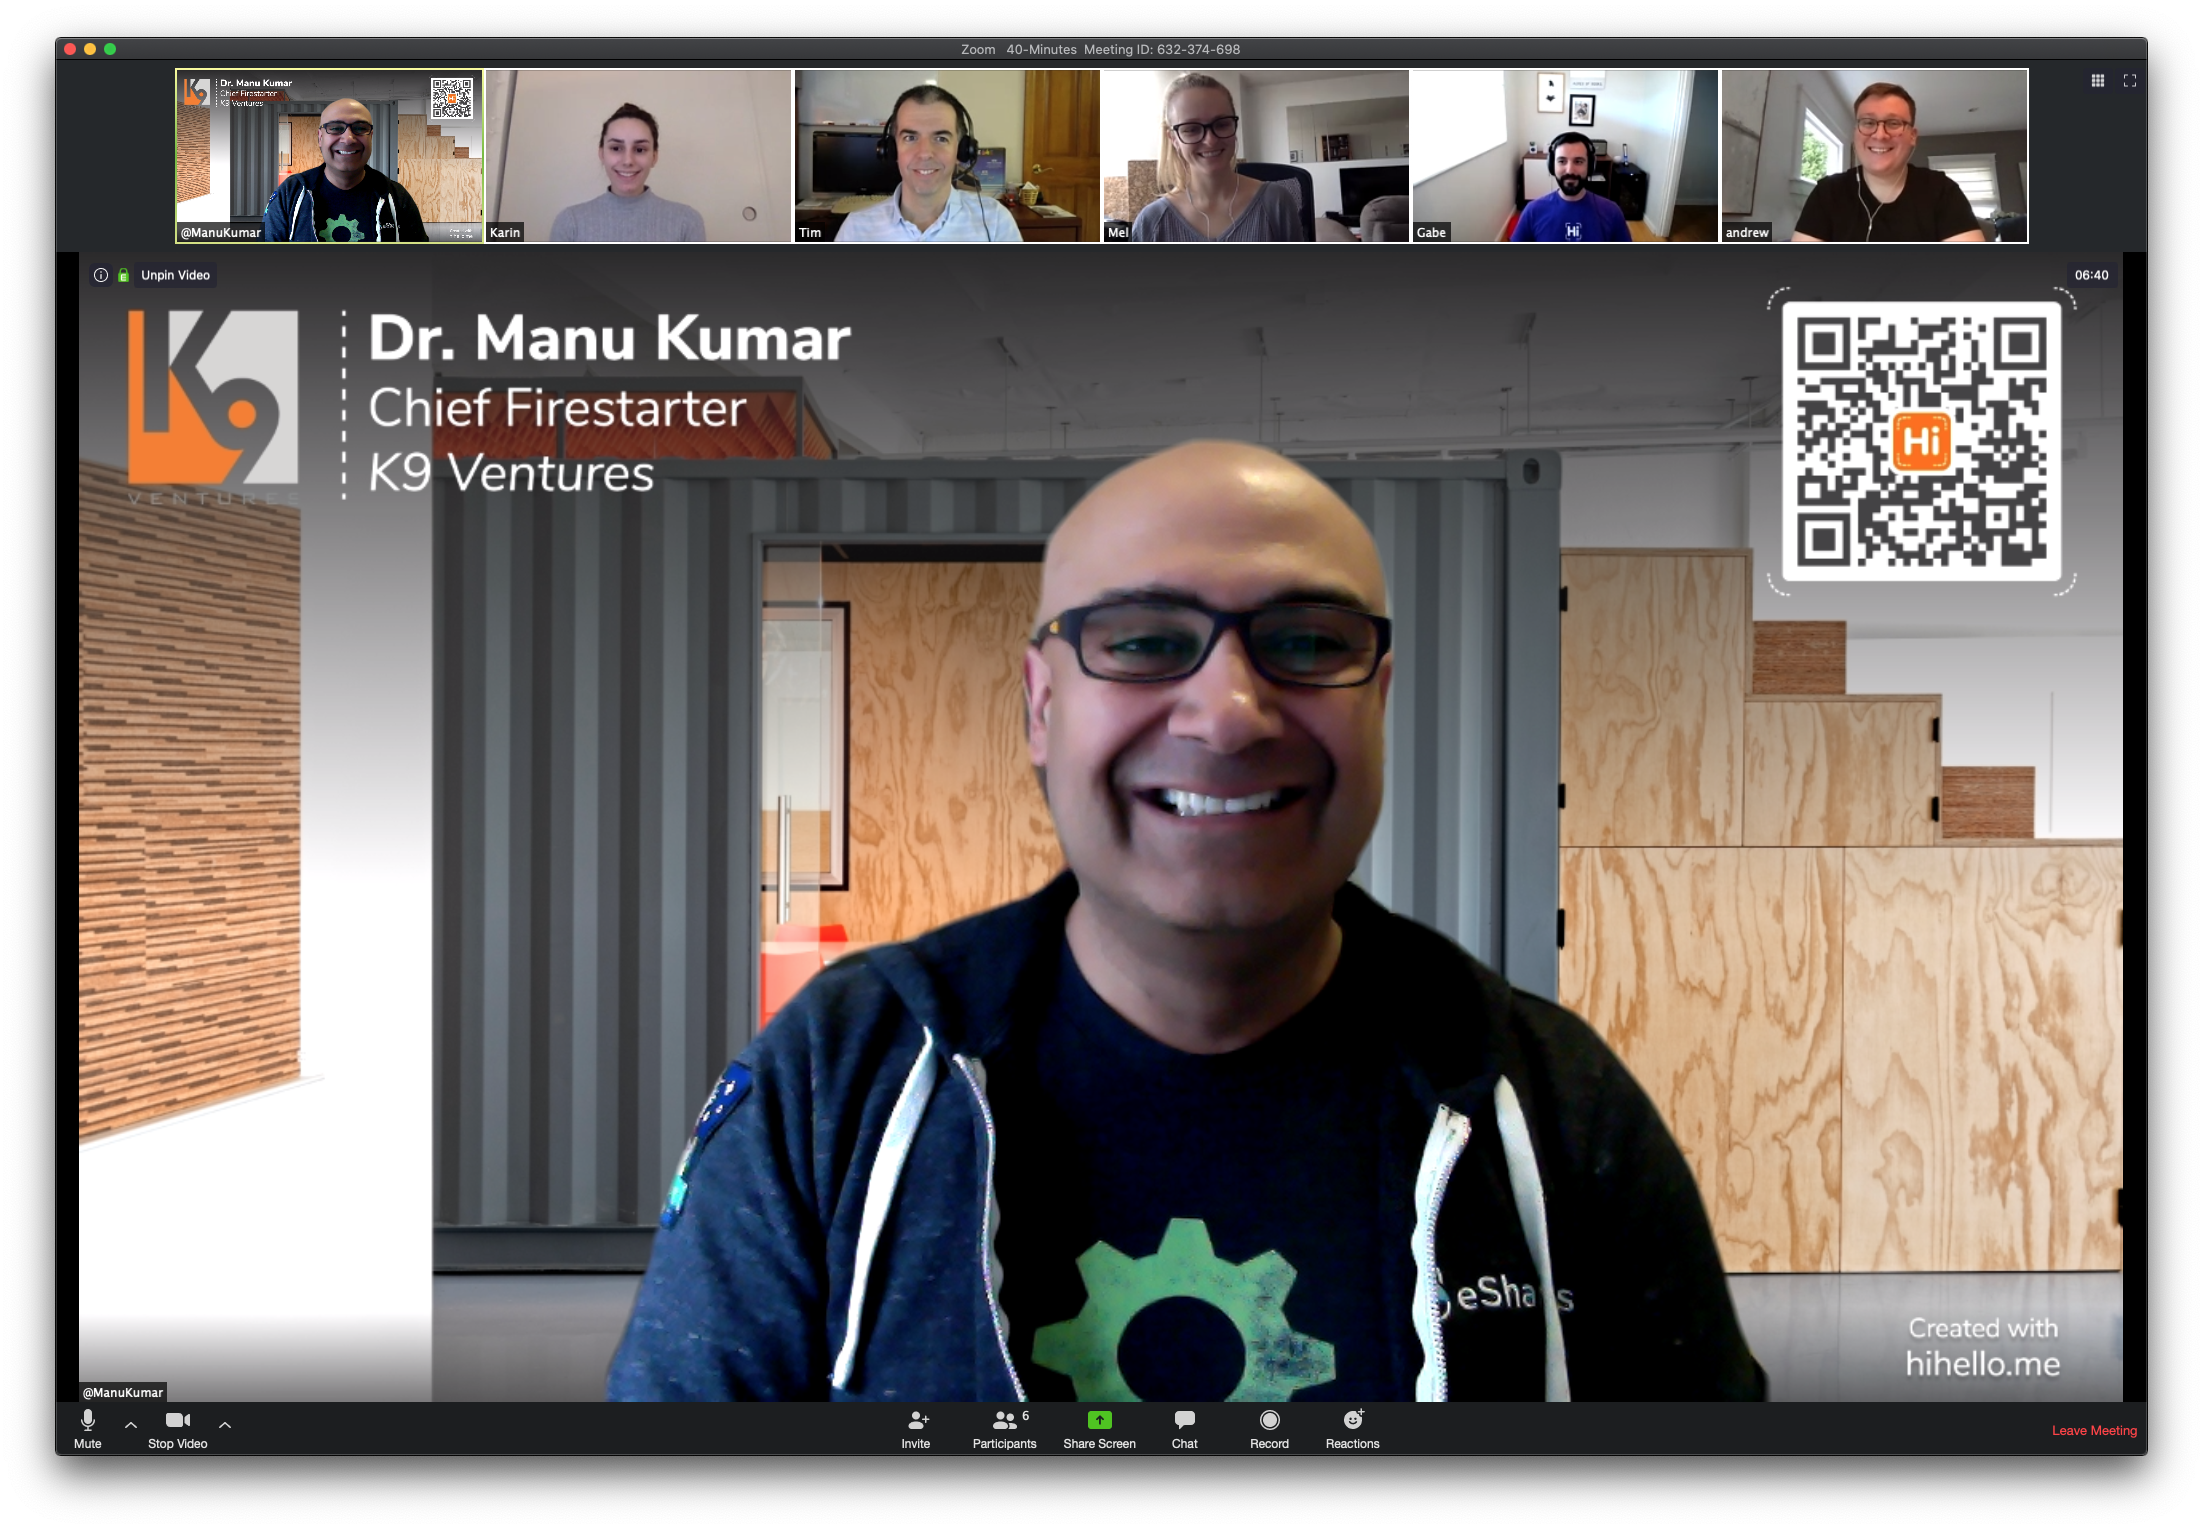 HiHello's Co-founder and CEO, Manu Kumar, showing his free CEO corner office virtual background during a video call.